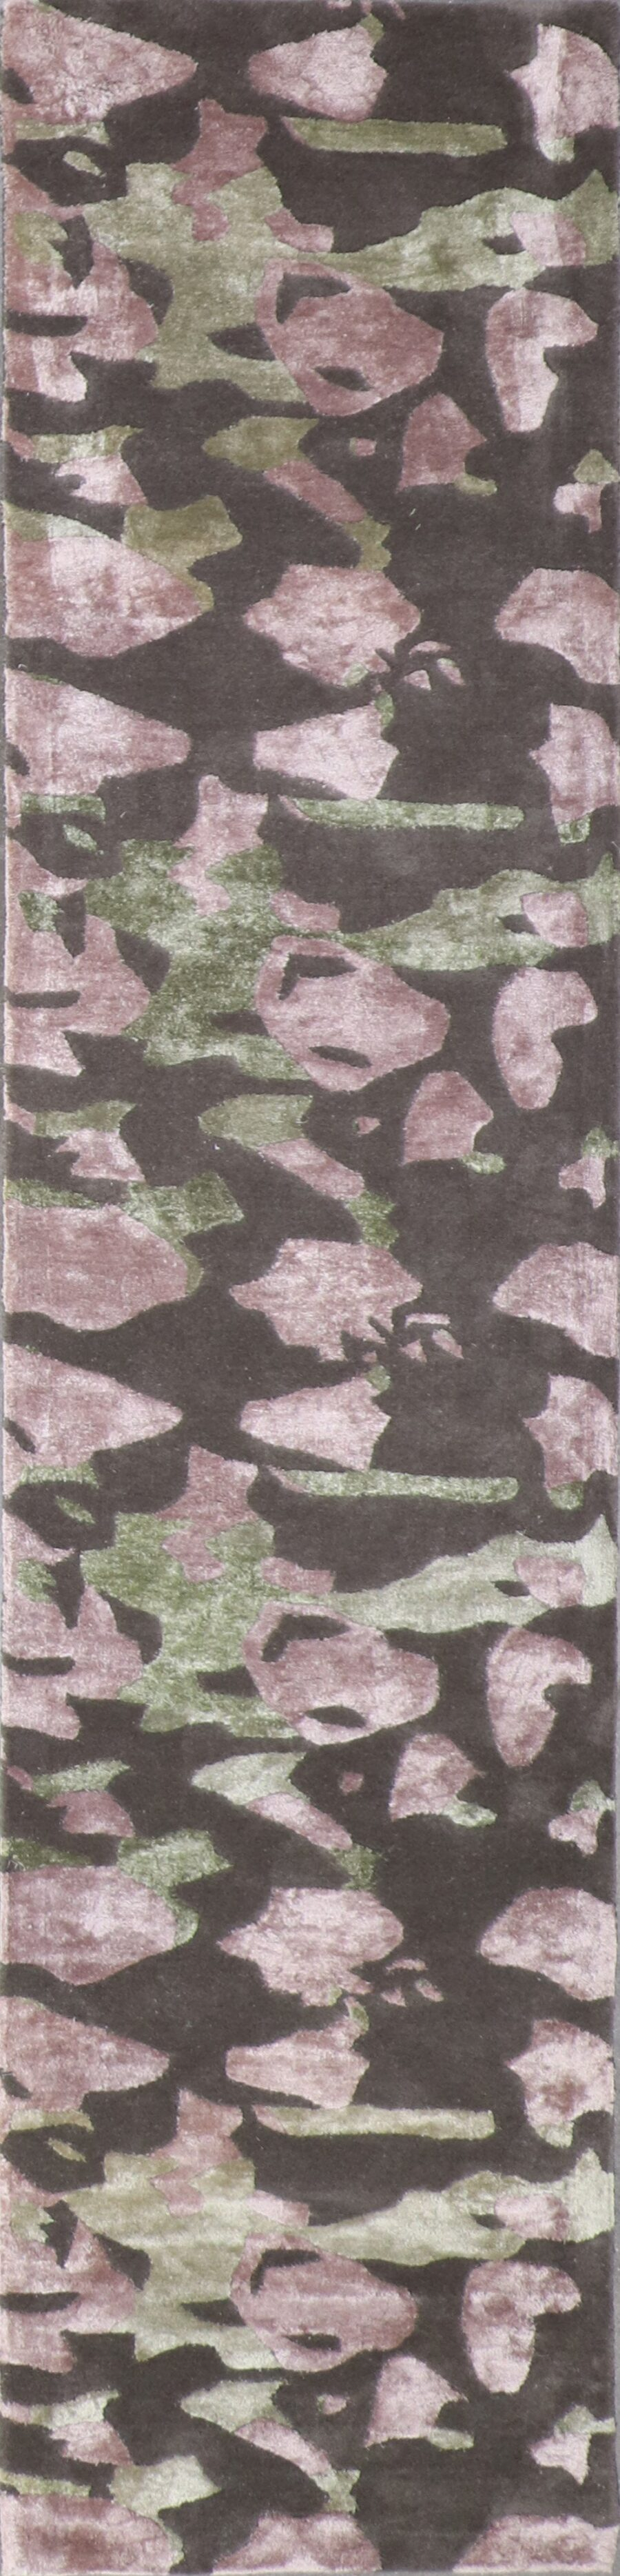 """2'6""""x11'8"""" Contemporary Wool & Silk Hand-Tufted Rug - Direct Rug Import 